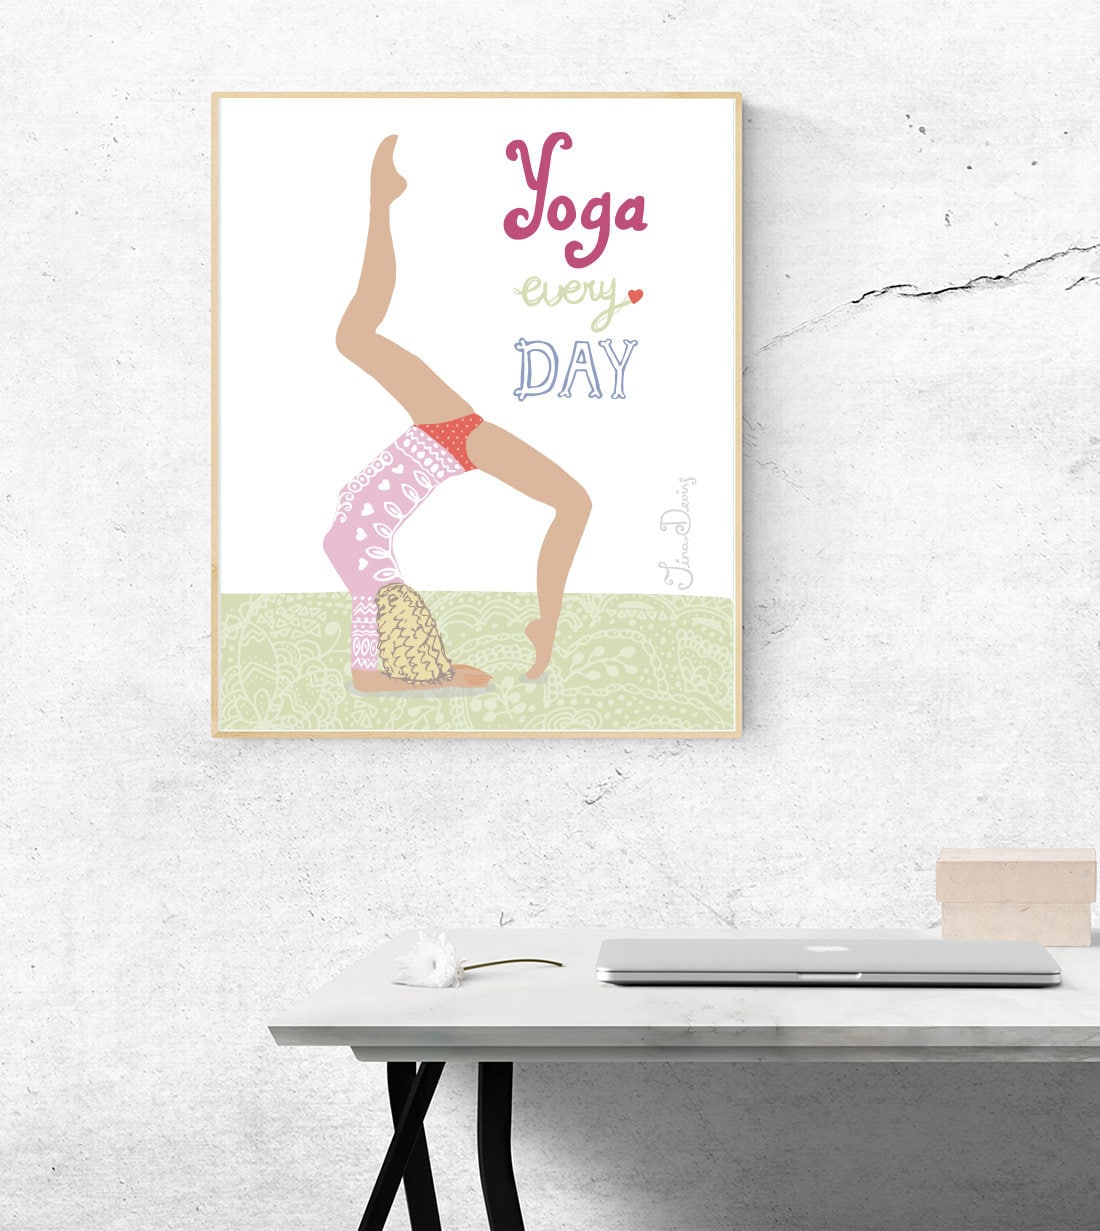 Yoga Art Print Yoga Studio Decor Yoga Wall Art Yoga Every Etsy